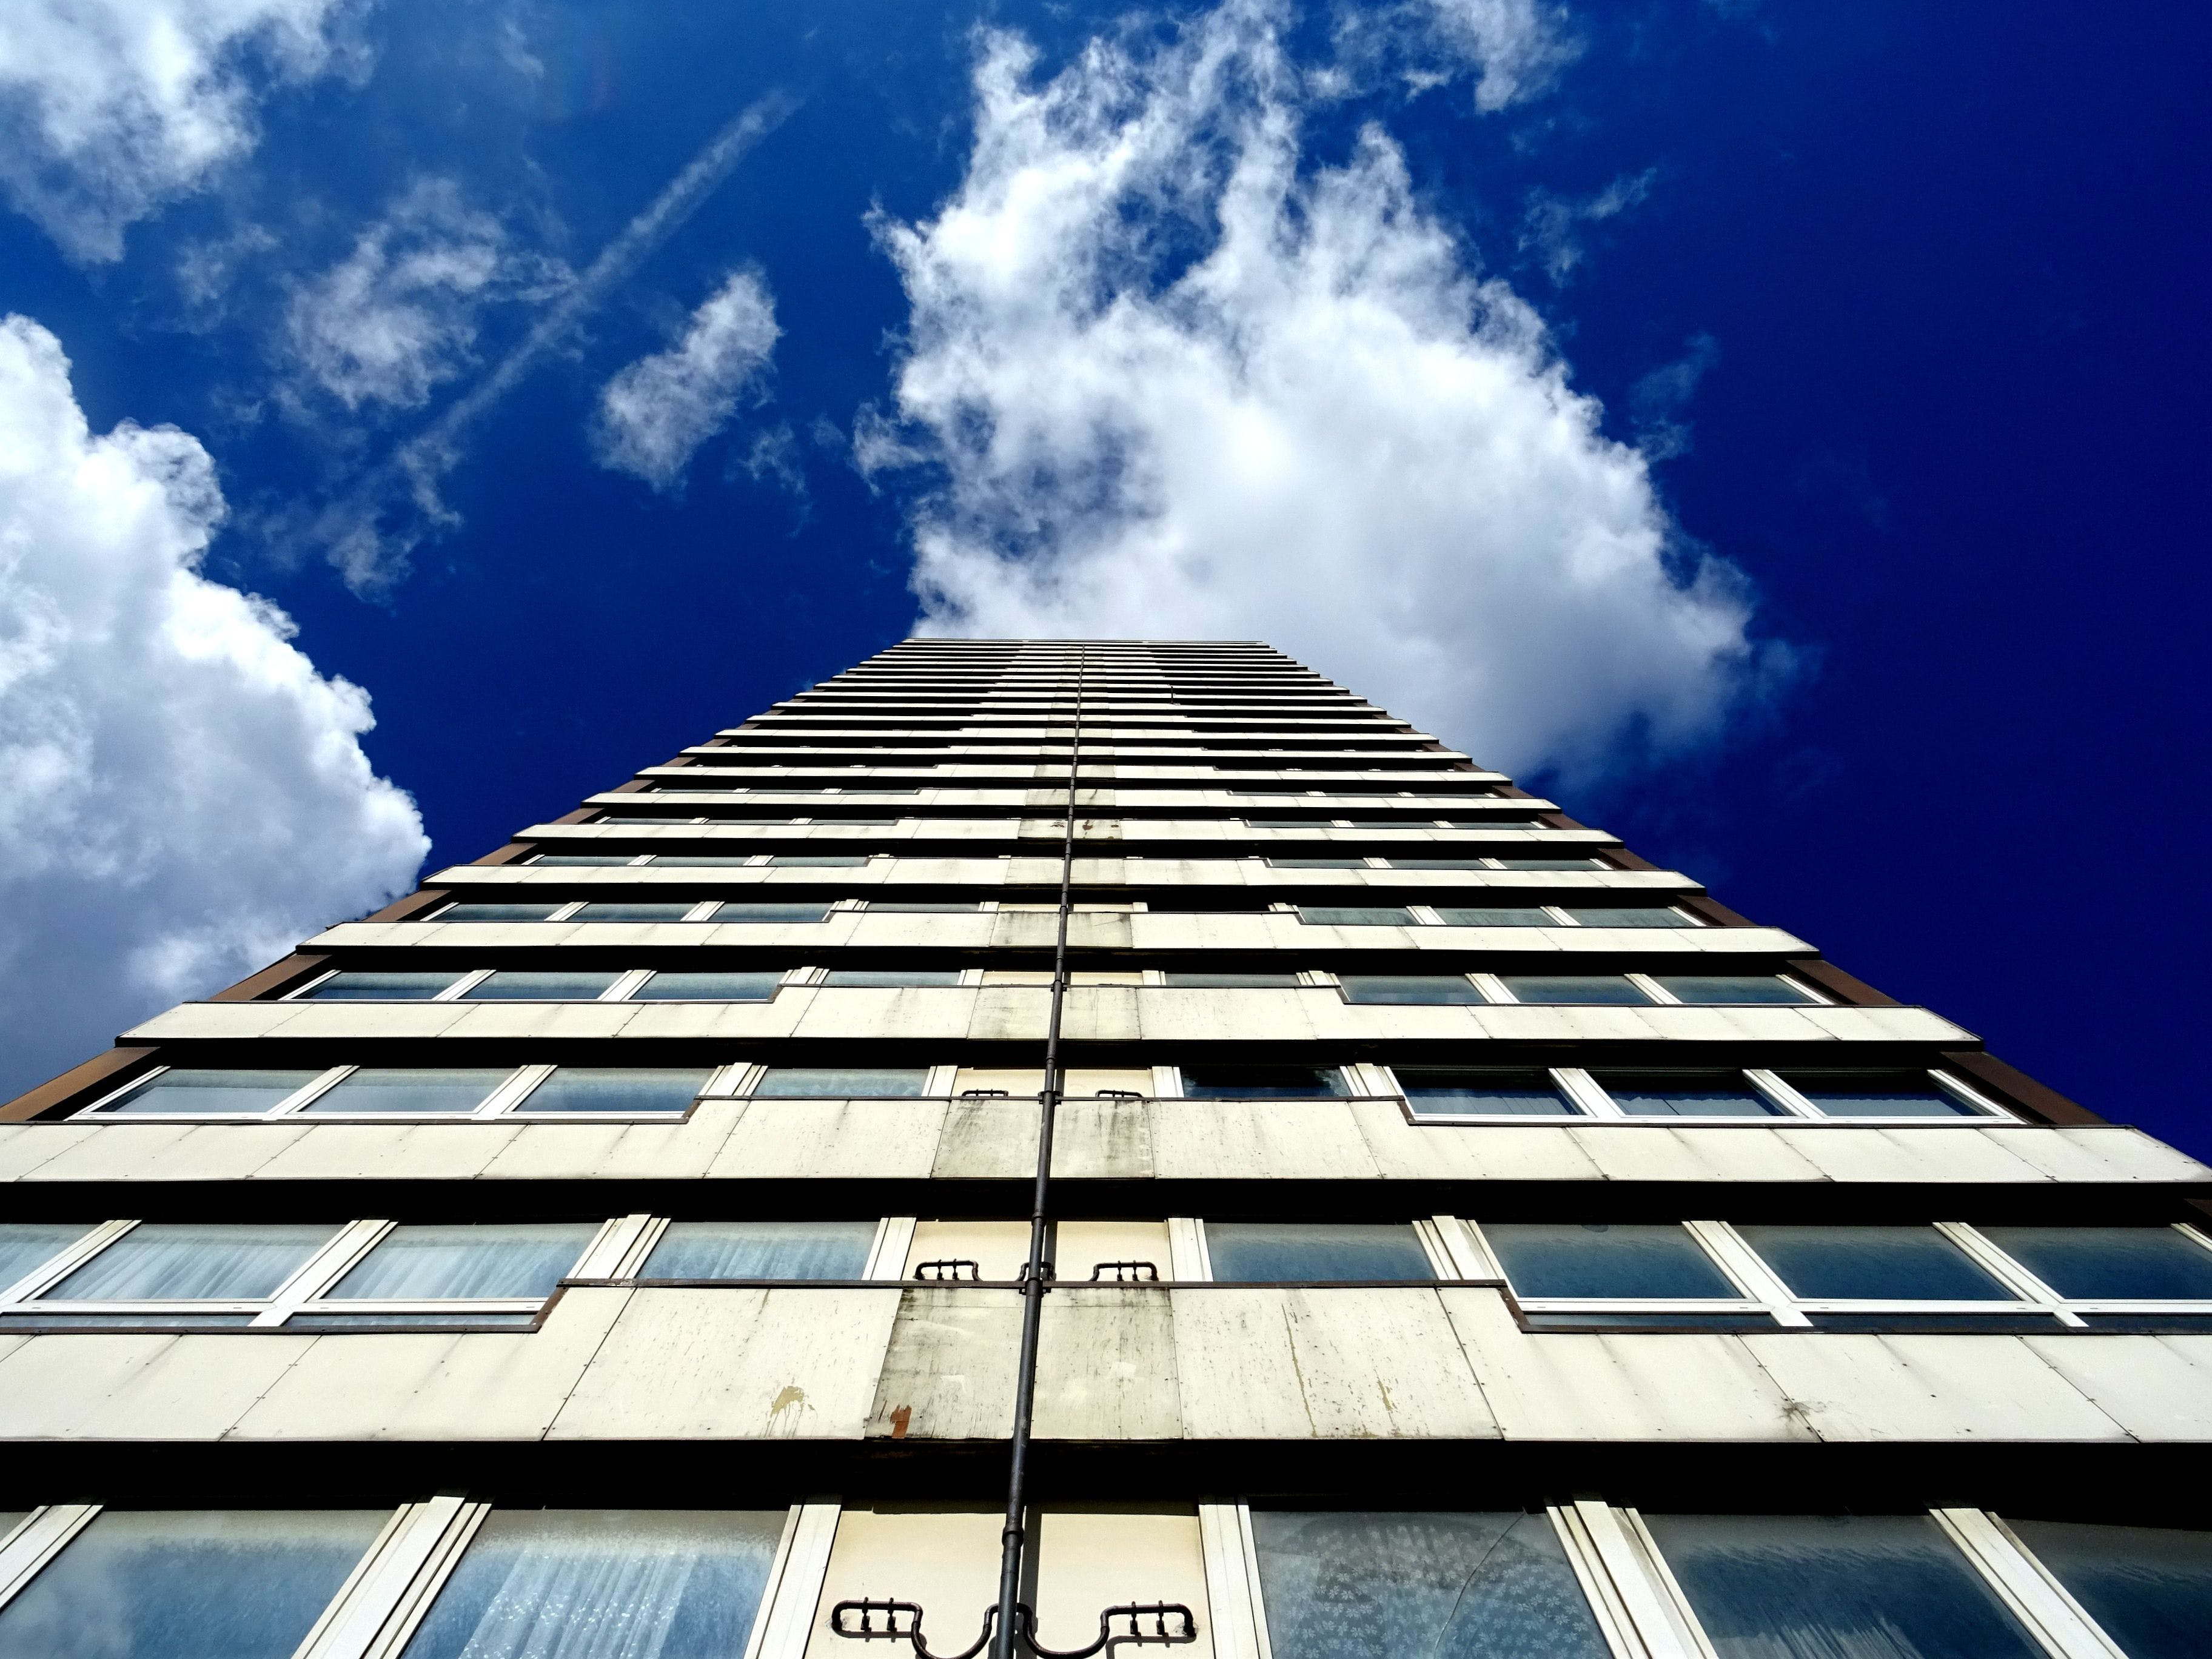 Low Angle Photography of White High-rise Building